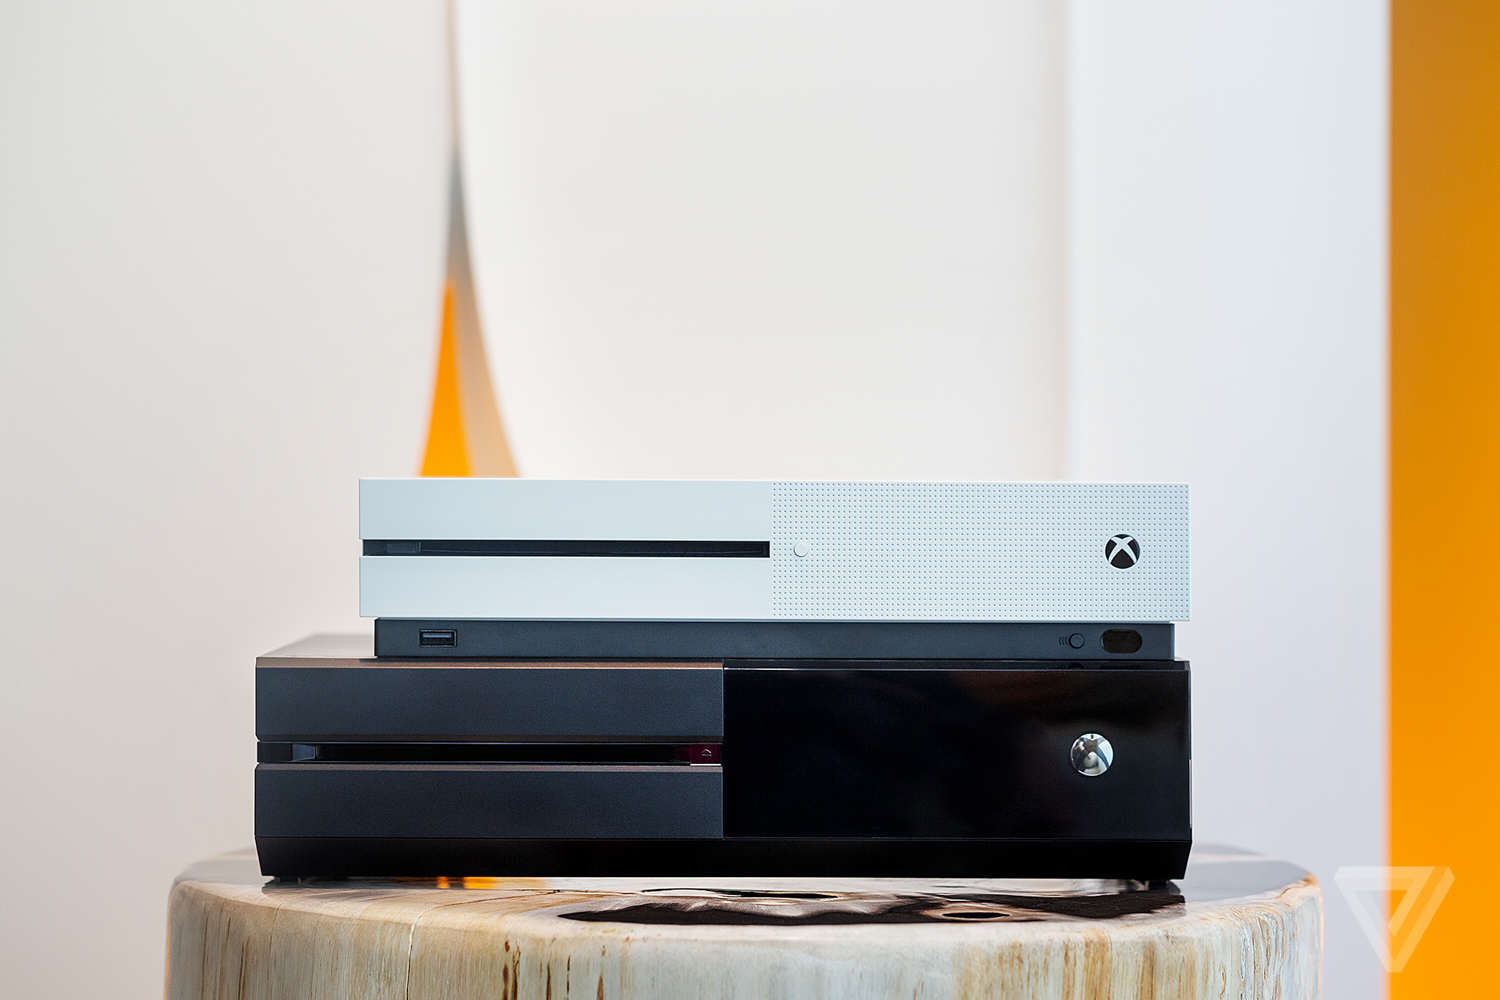 Microsoft Officially Unveils The Xbox One S vpavic 070616 1091 0057.0